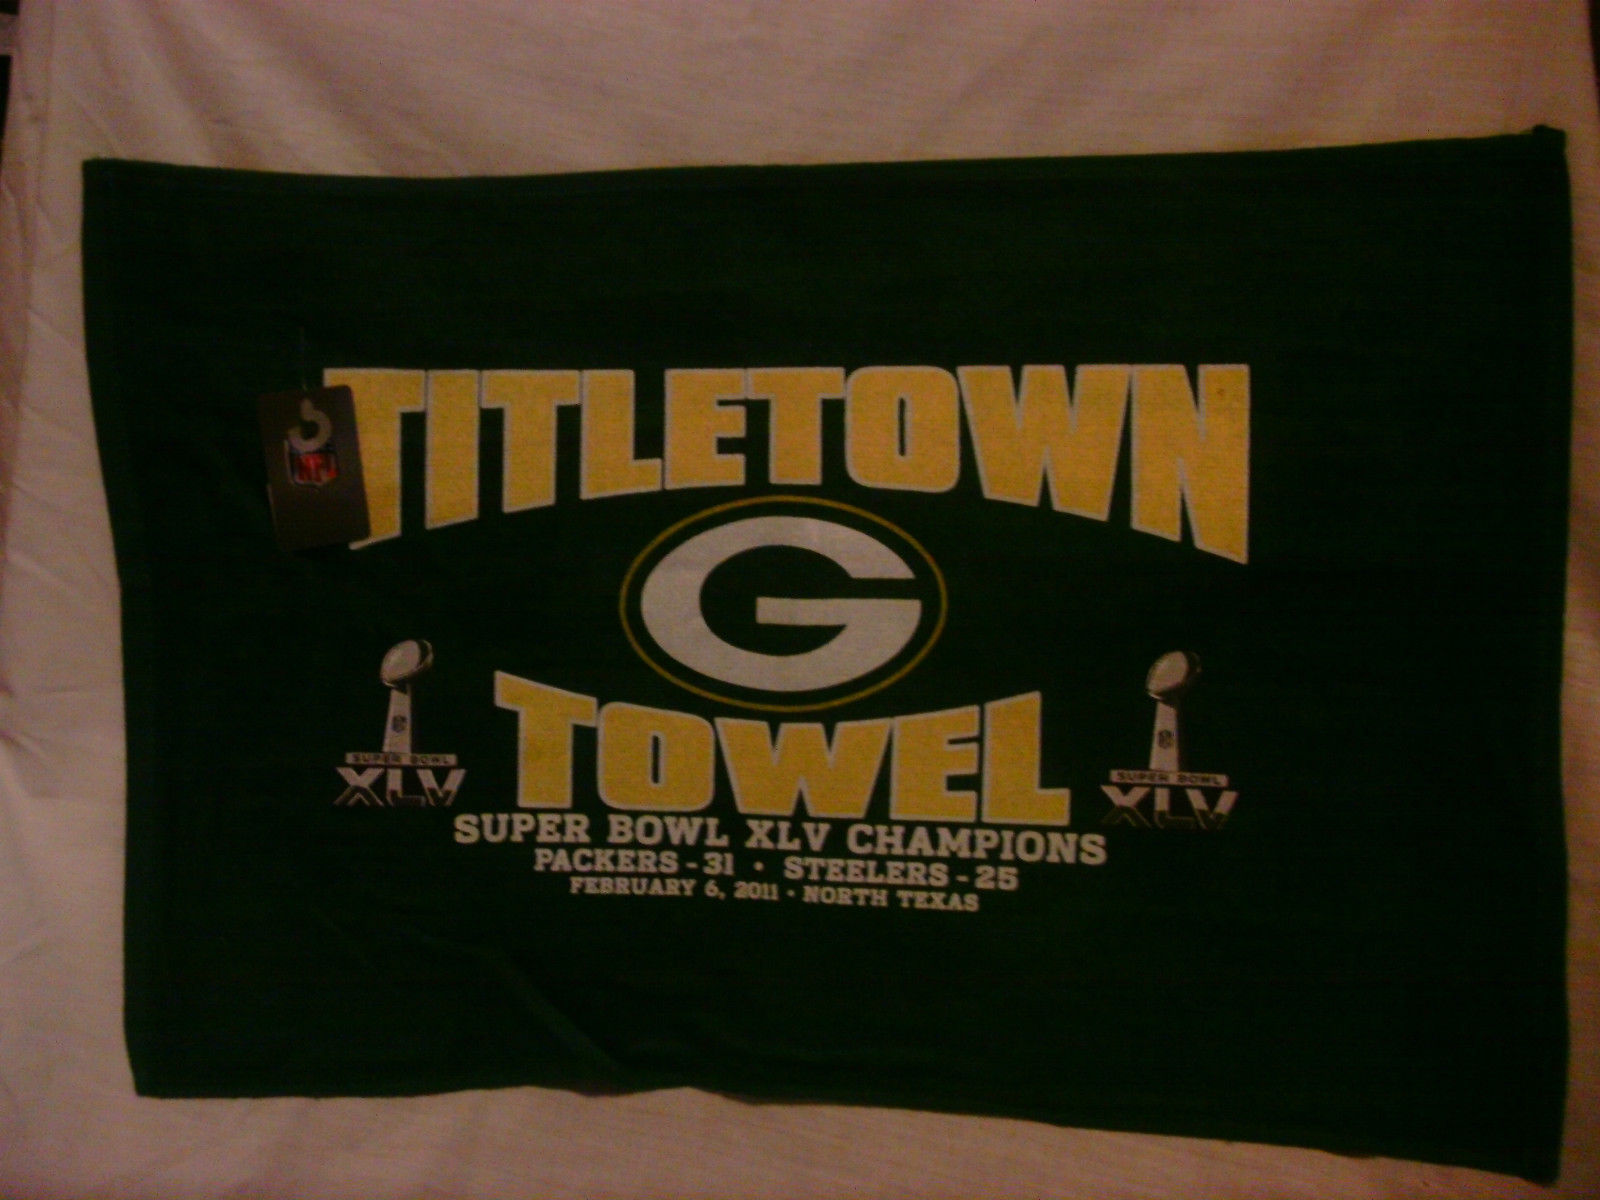 Green Bay Packers Title Town Towel Super Bowl XLV Super Bowl Champions